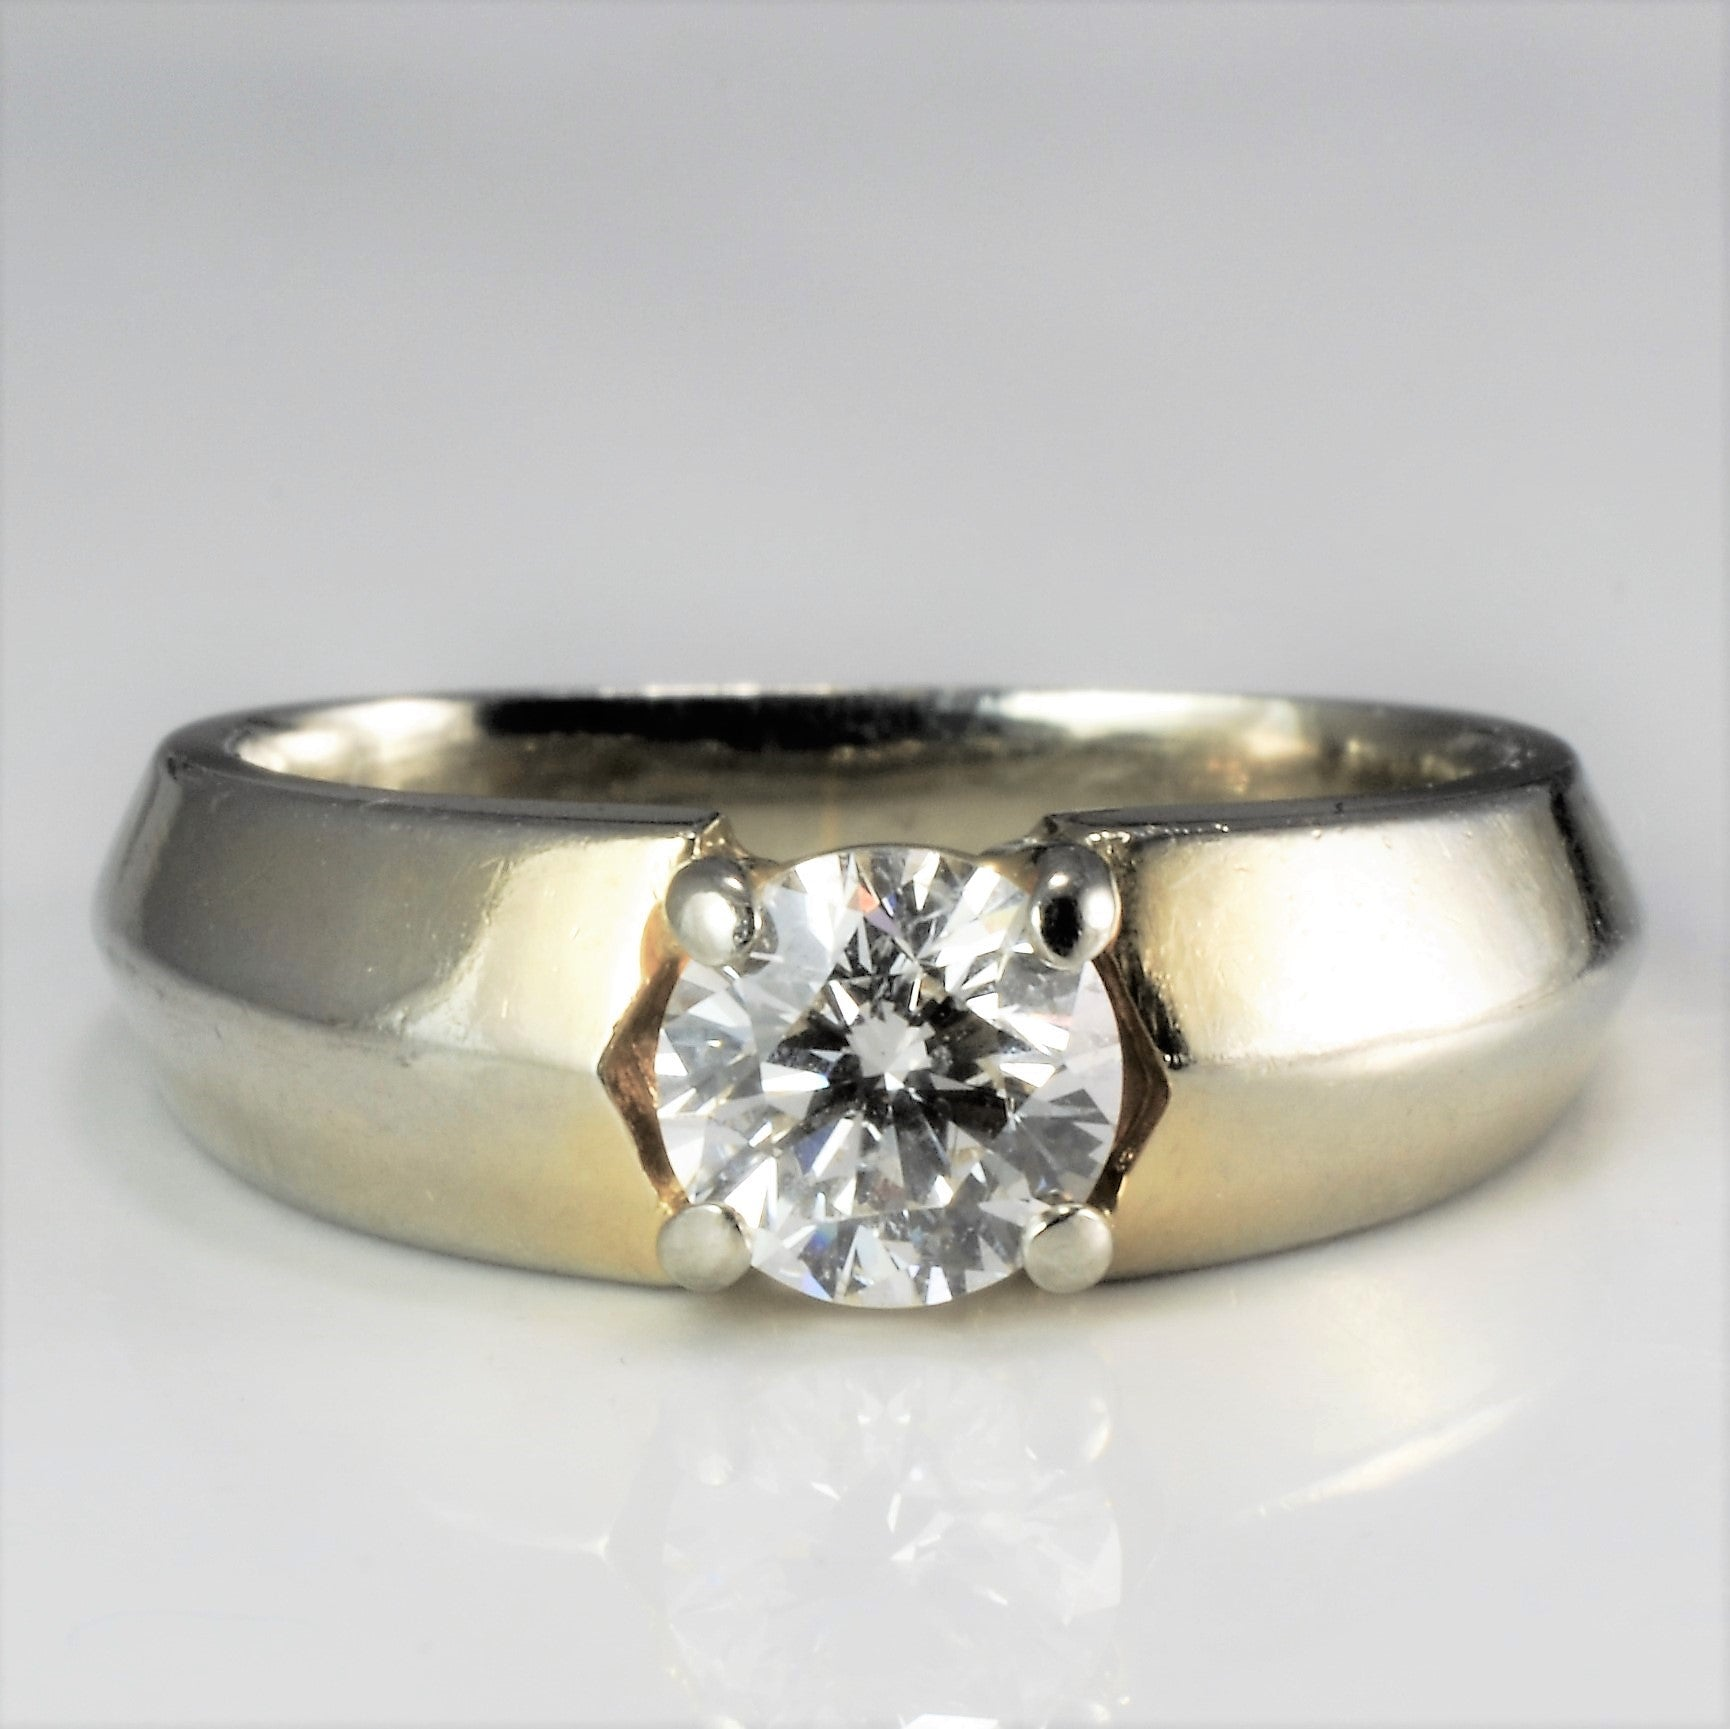 Tapered Solitaire Diamond Engagement Ring | 0.57 ct, SZ 5.25 |